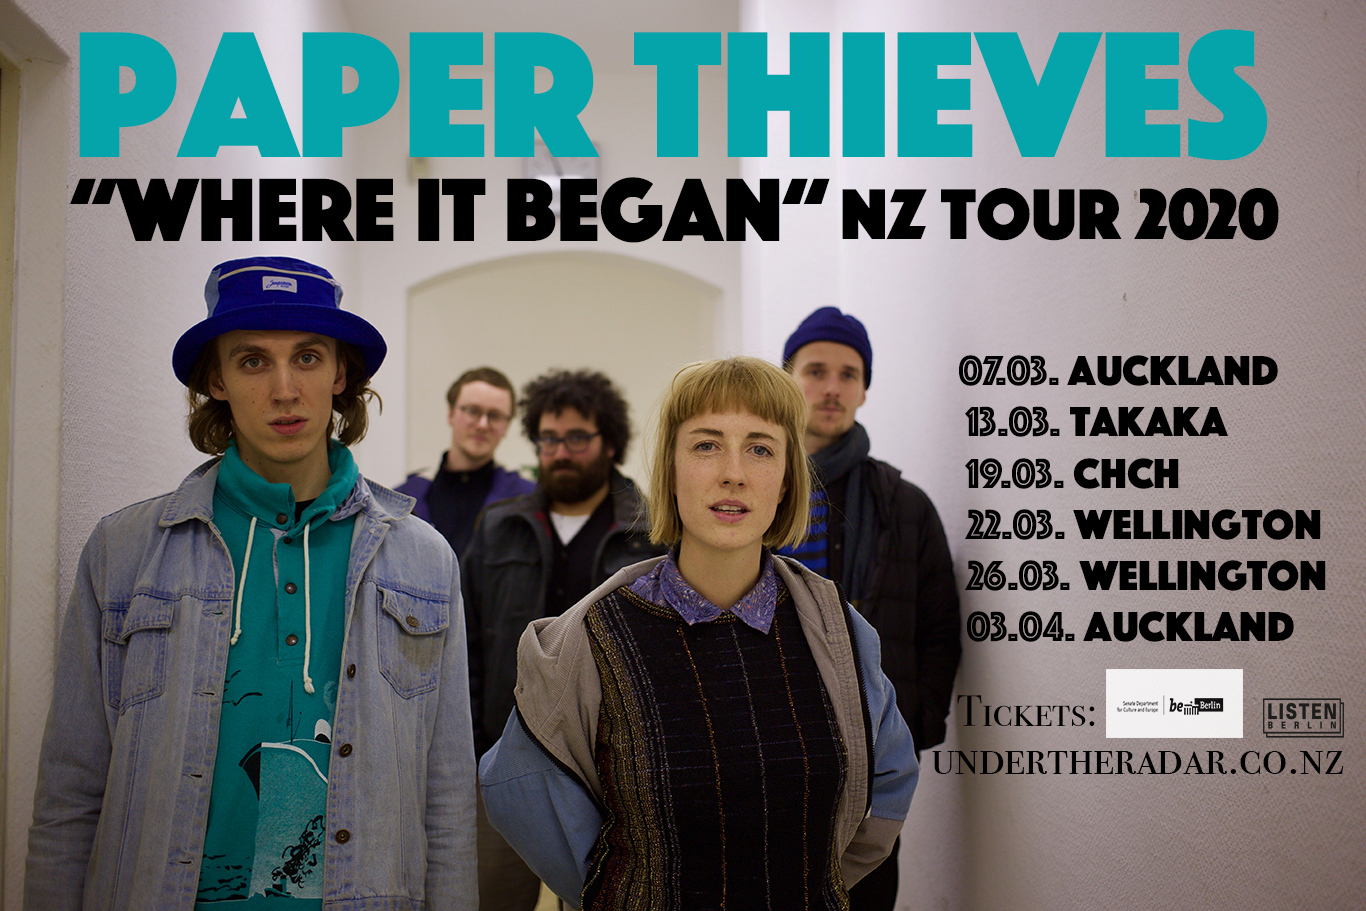 Paper Thieves - Cancelled